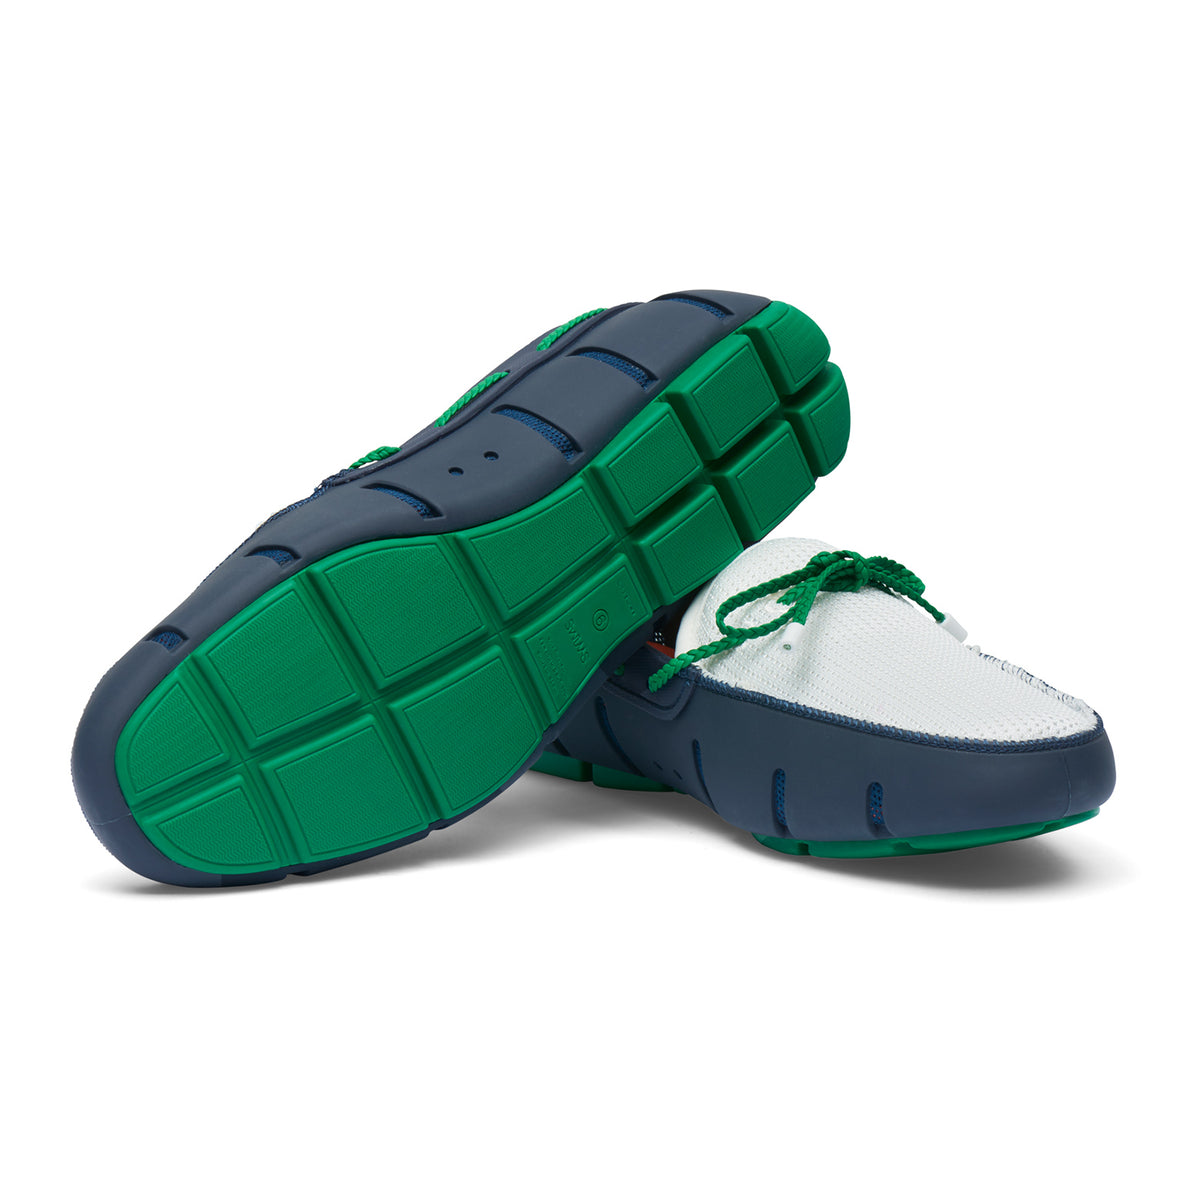 Braided Lace Loafer - background::white,variant::Navy/Jolly Green